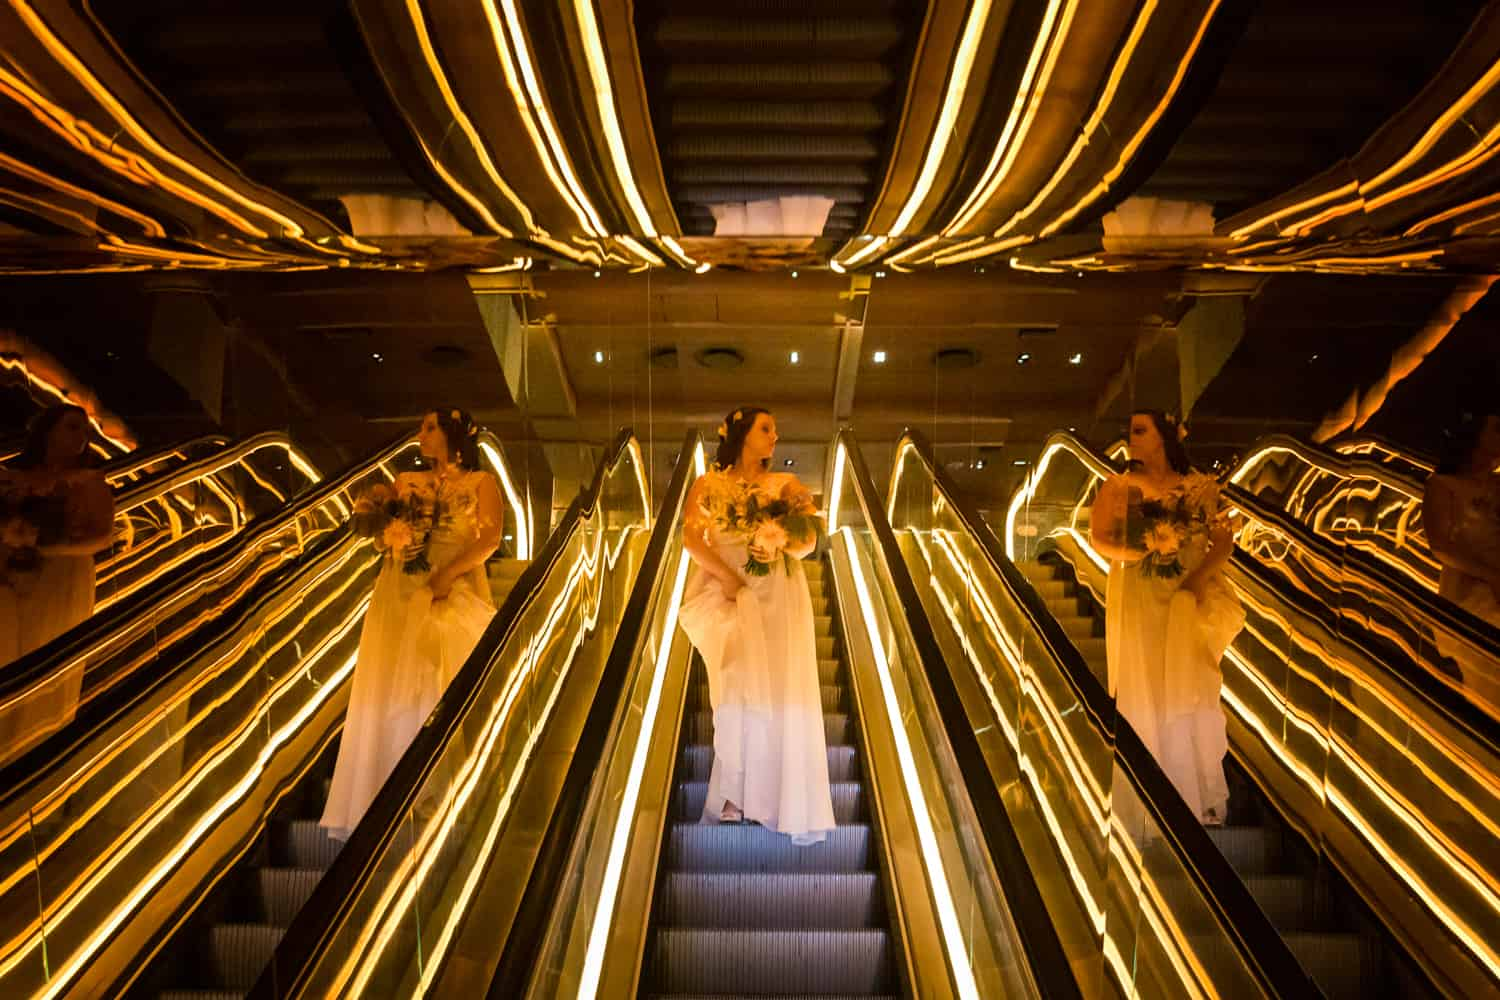 Bride coming down neon-lit escalator